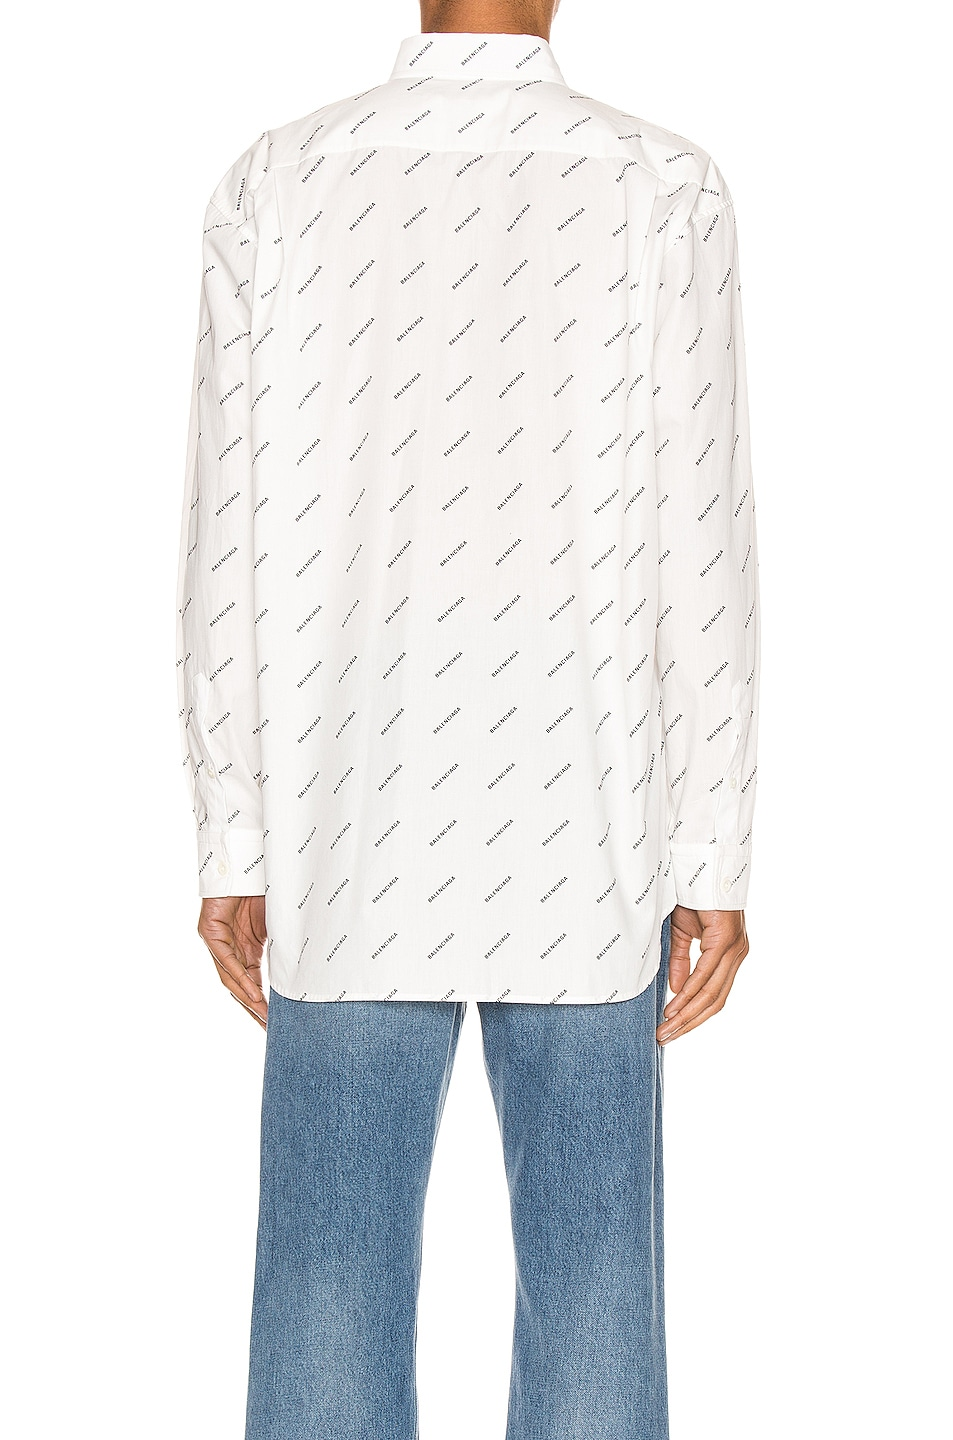 Image 3 of Balenciaga Normal Fit Long Sleeve Shirt in White & Black